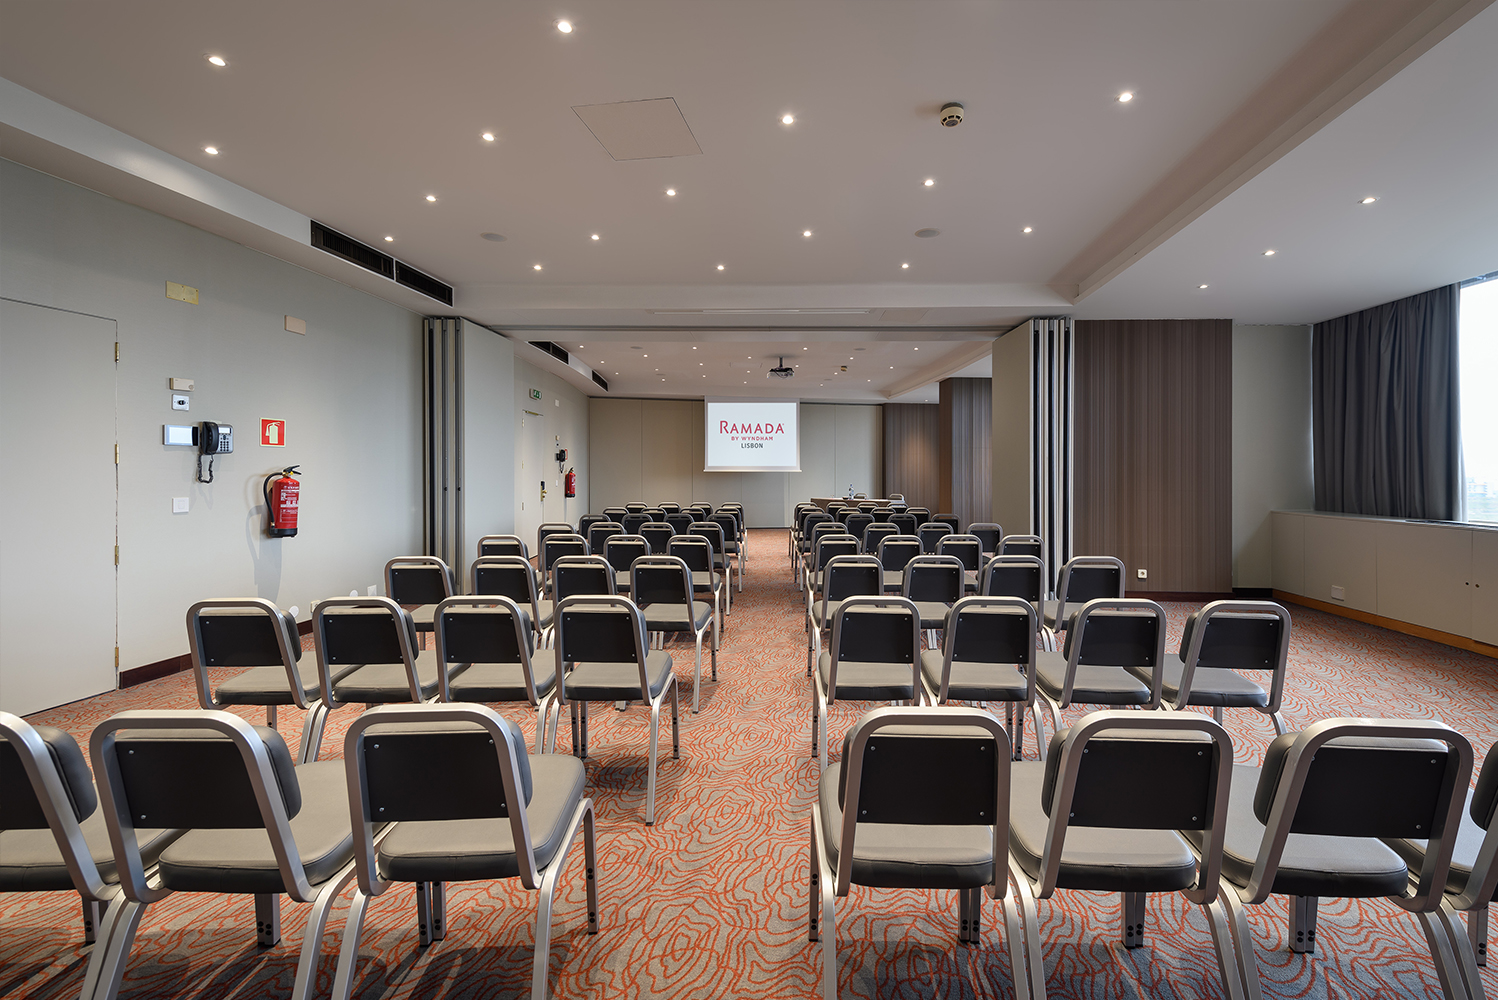 Ramada Lisbon has 11 meeting rooms, all with natural light, and an auditorium with capacity for 250 people.